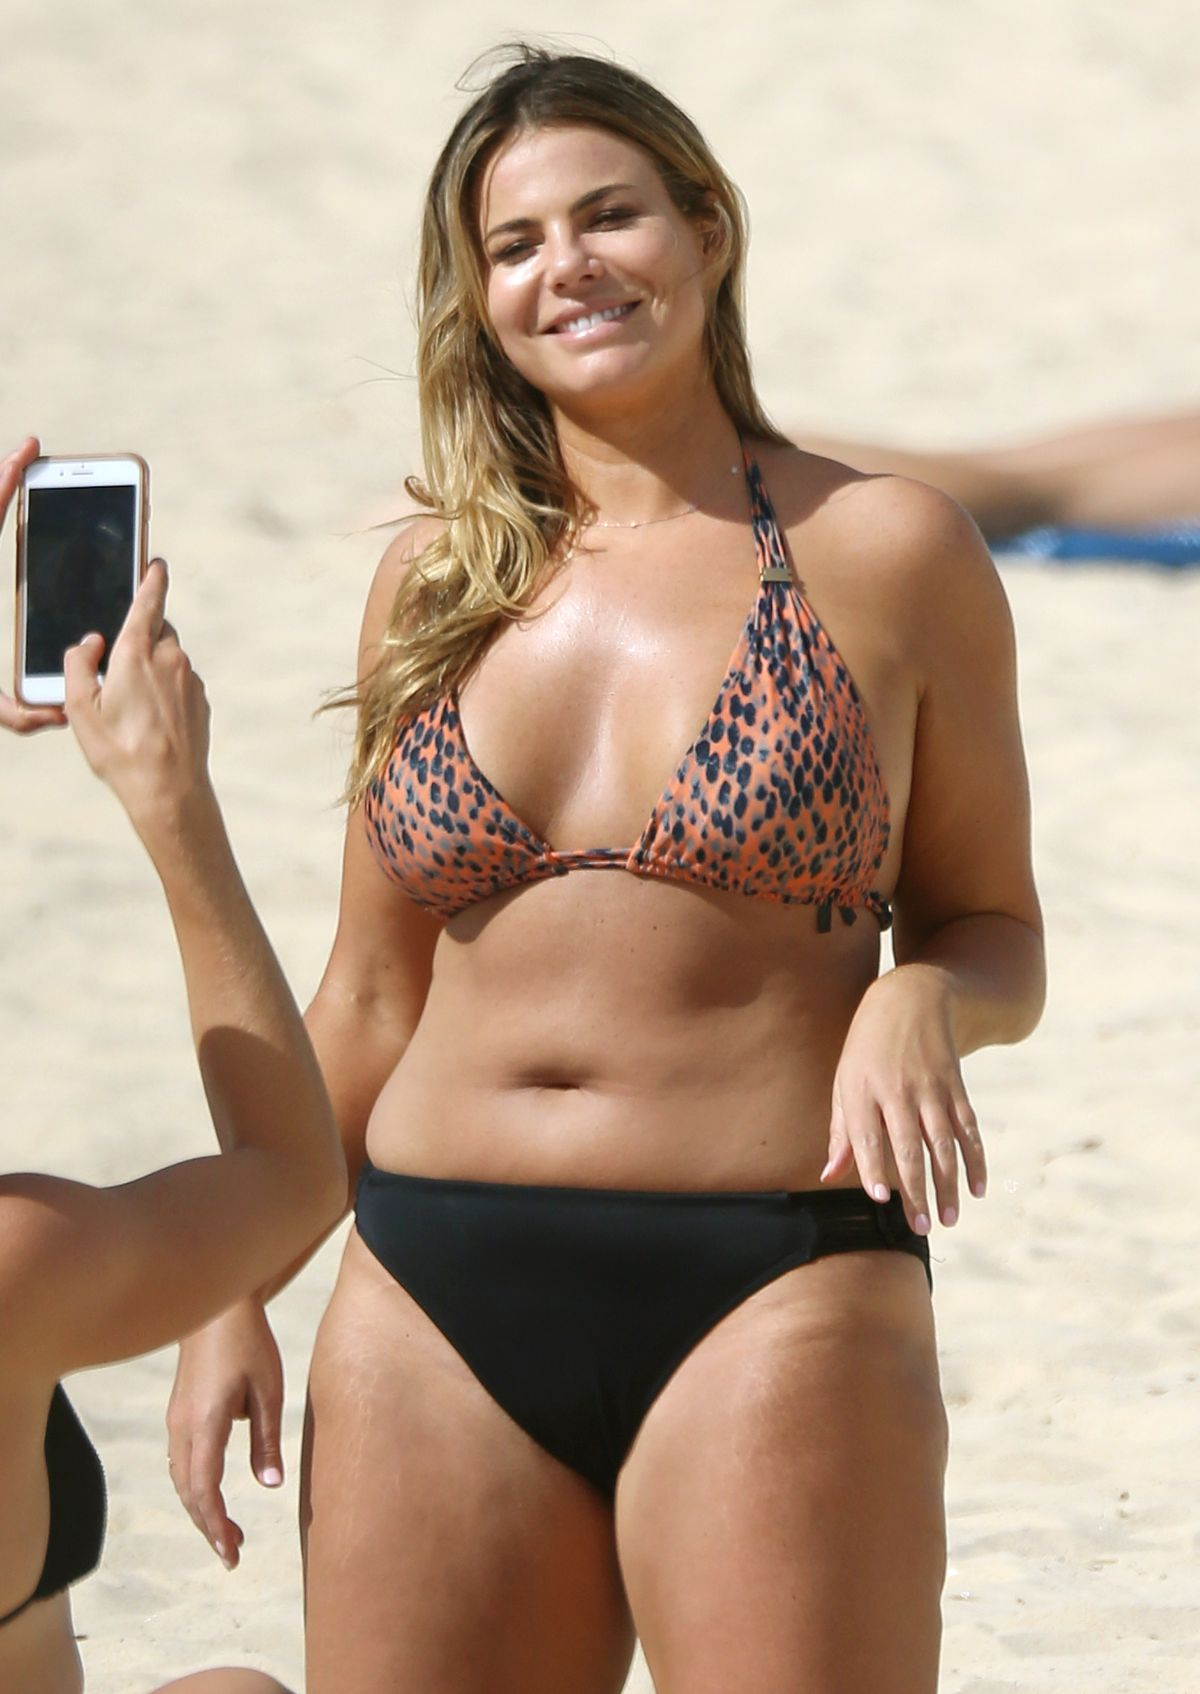 Fiona Falkiner in Bikini at Coogee Beach in Sydney Pic 23 of 35